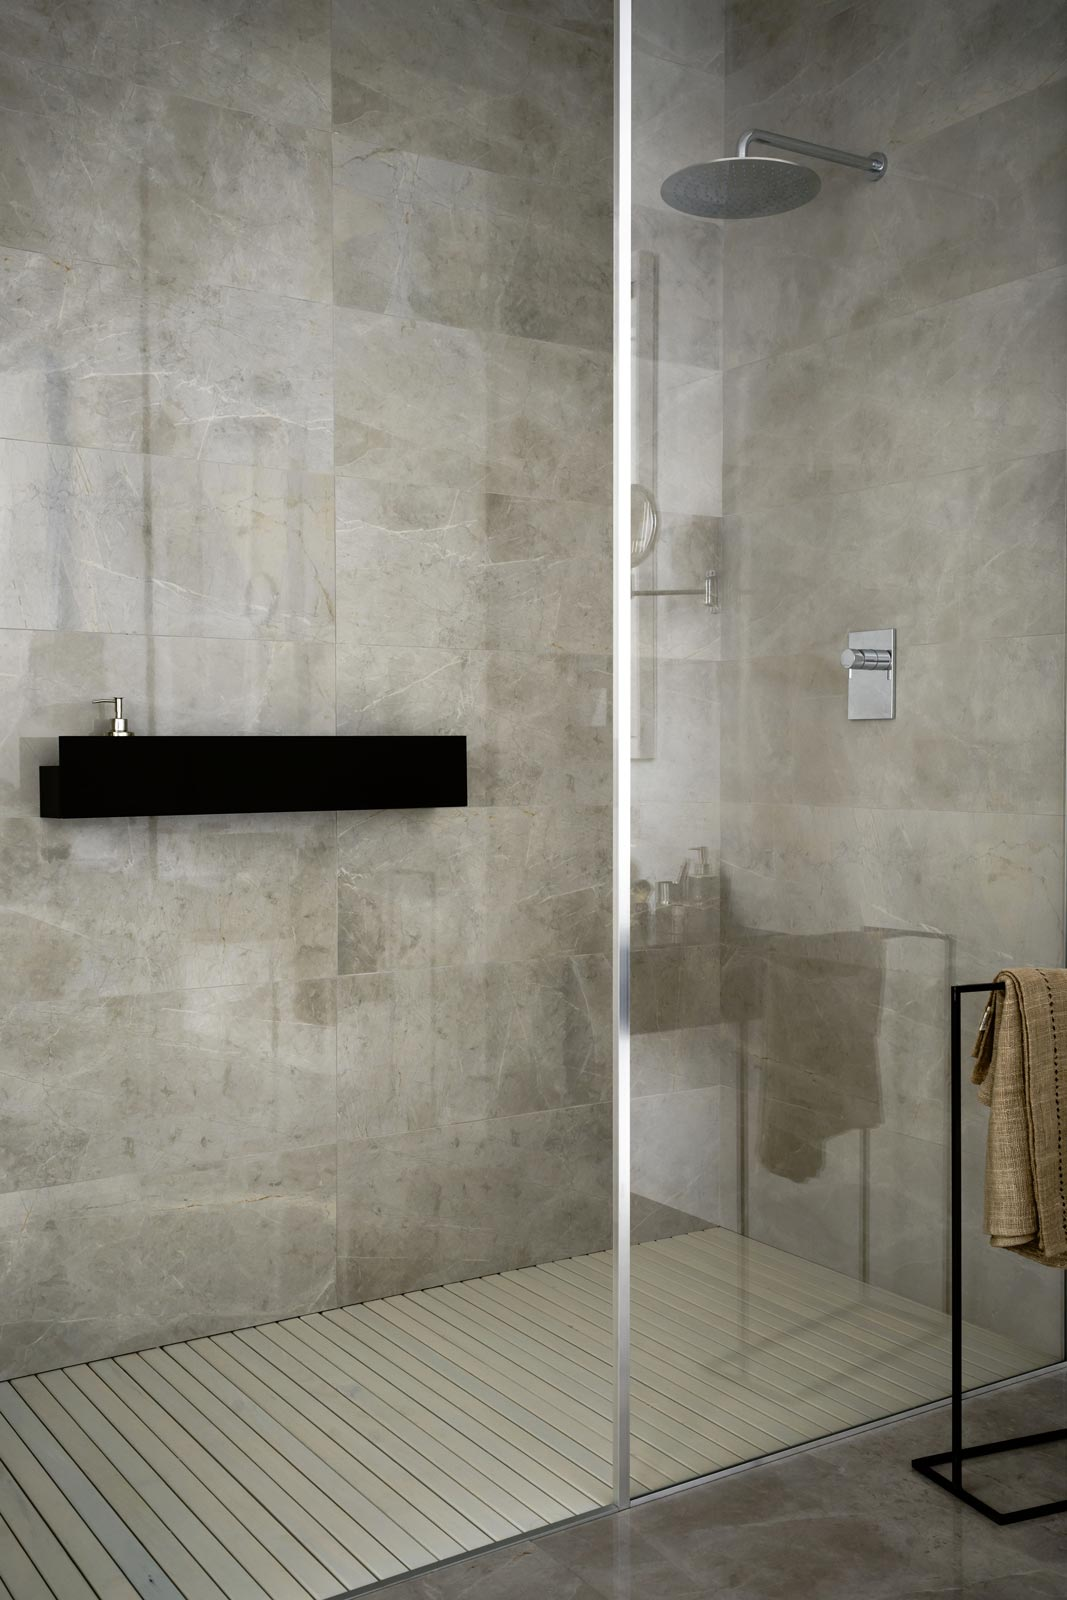 Azulejos Baño Saloni:Marazzi Porcelain Tile Shower